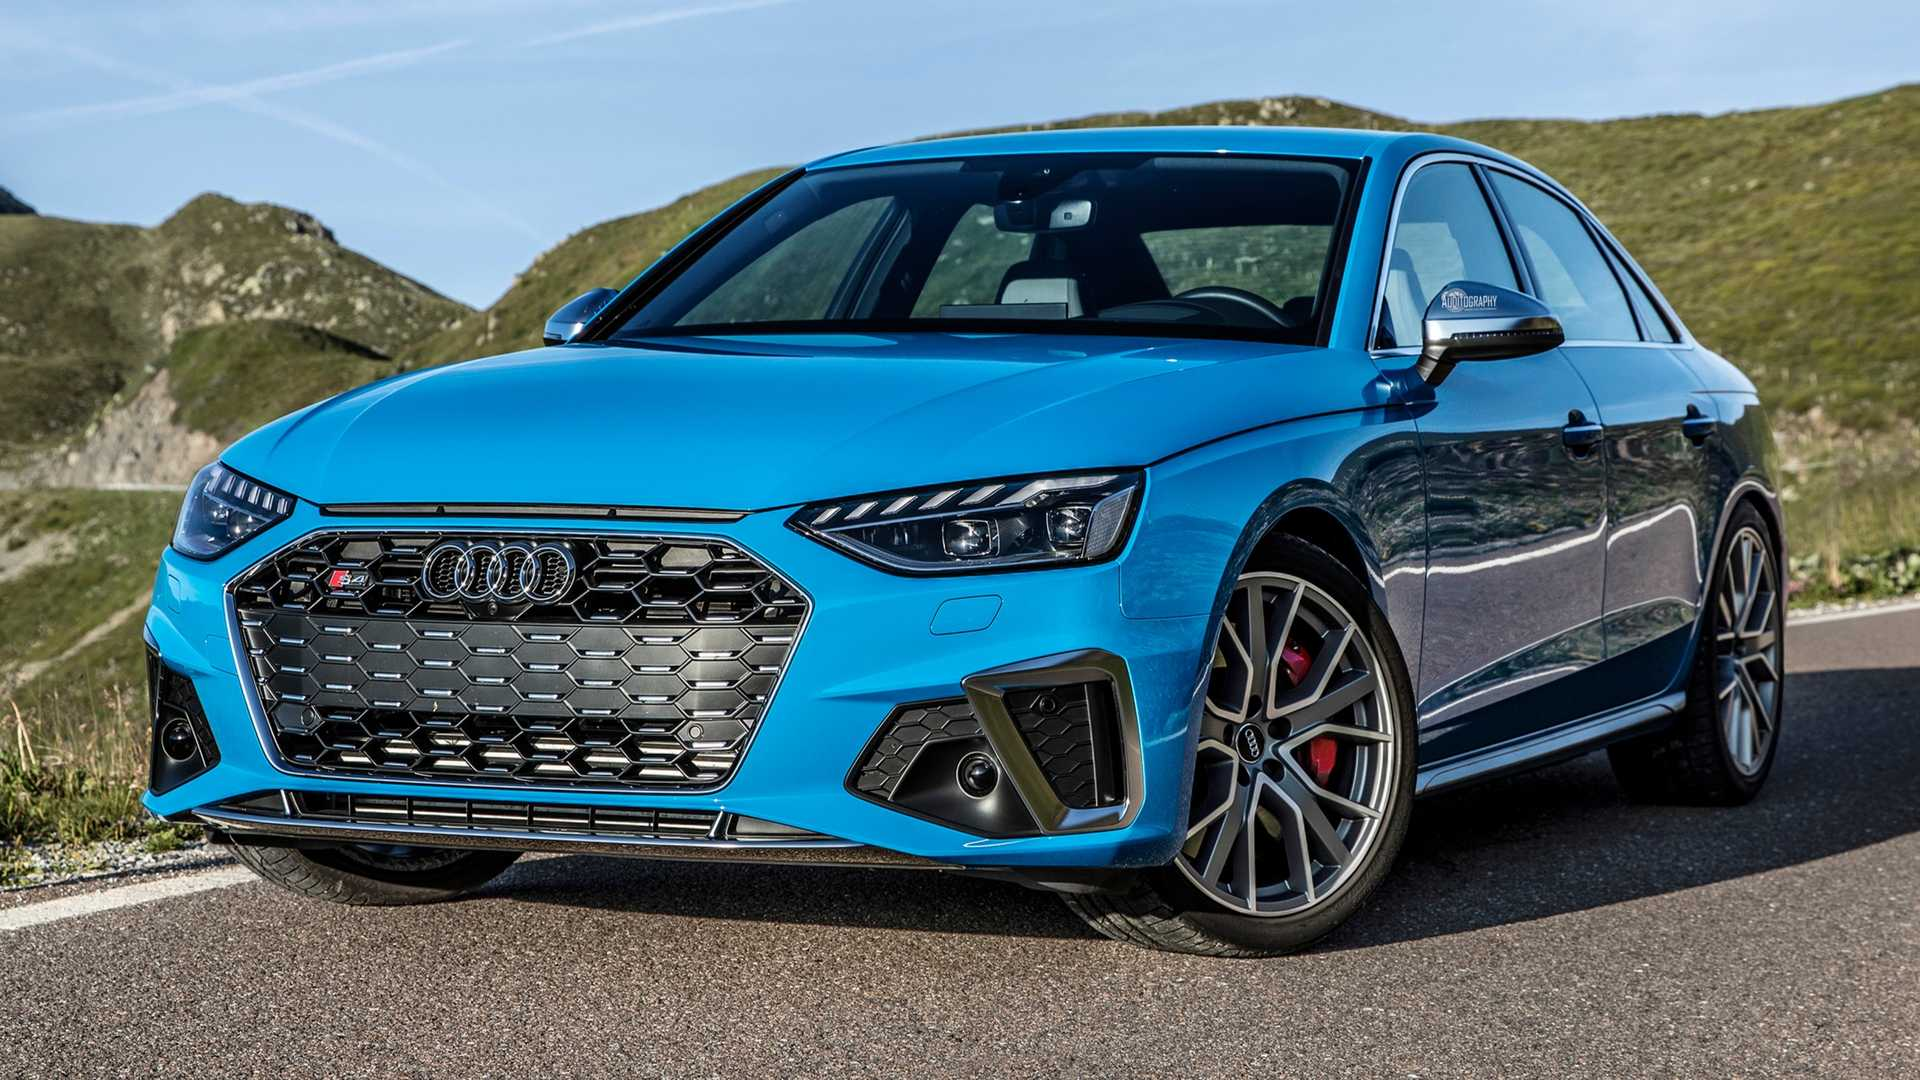 2020 Audi S4 Review.2020 Audi S4 Sedan Avant Videos Put Spotlight On The Major Facelift